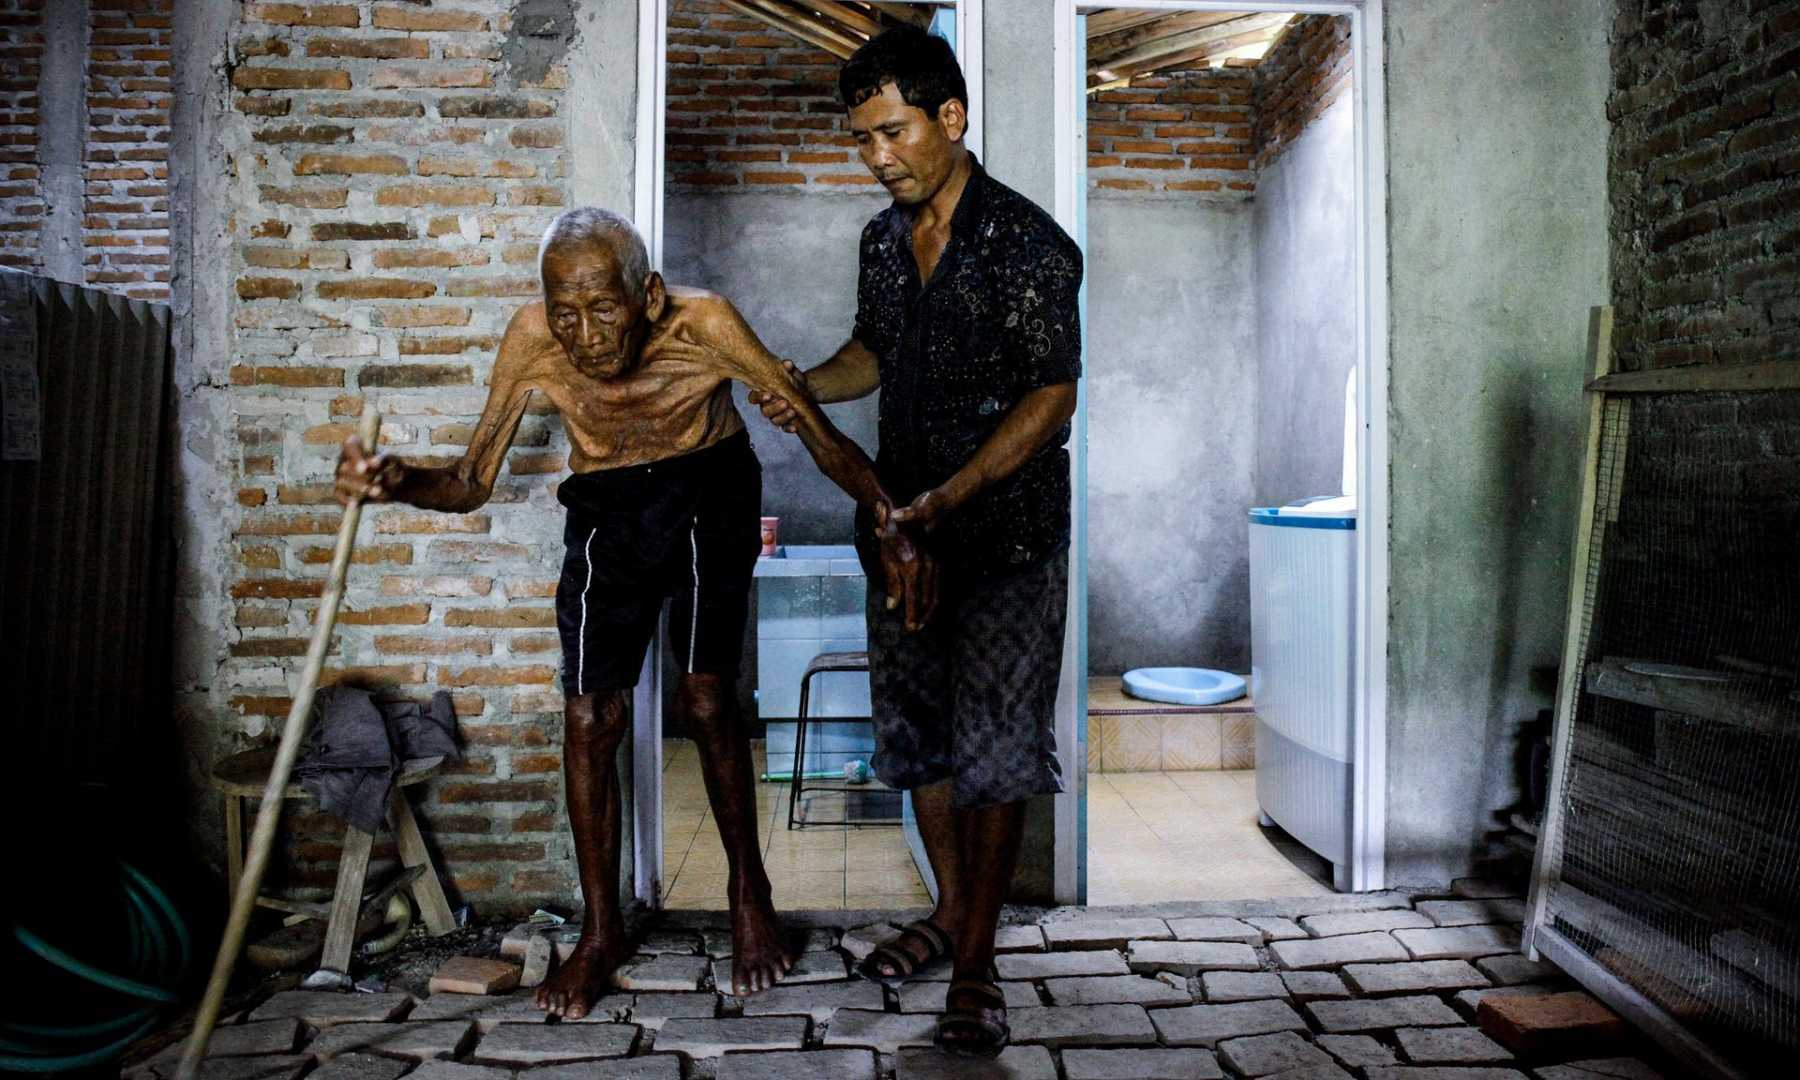 Indonesian Man Dies At 146 Years Old | 146